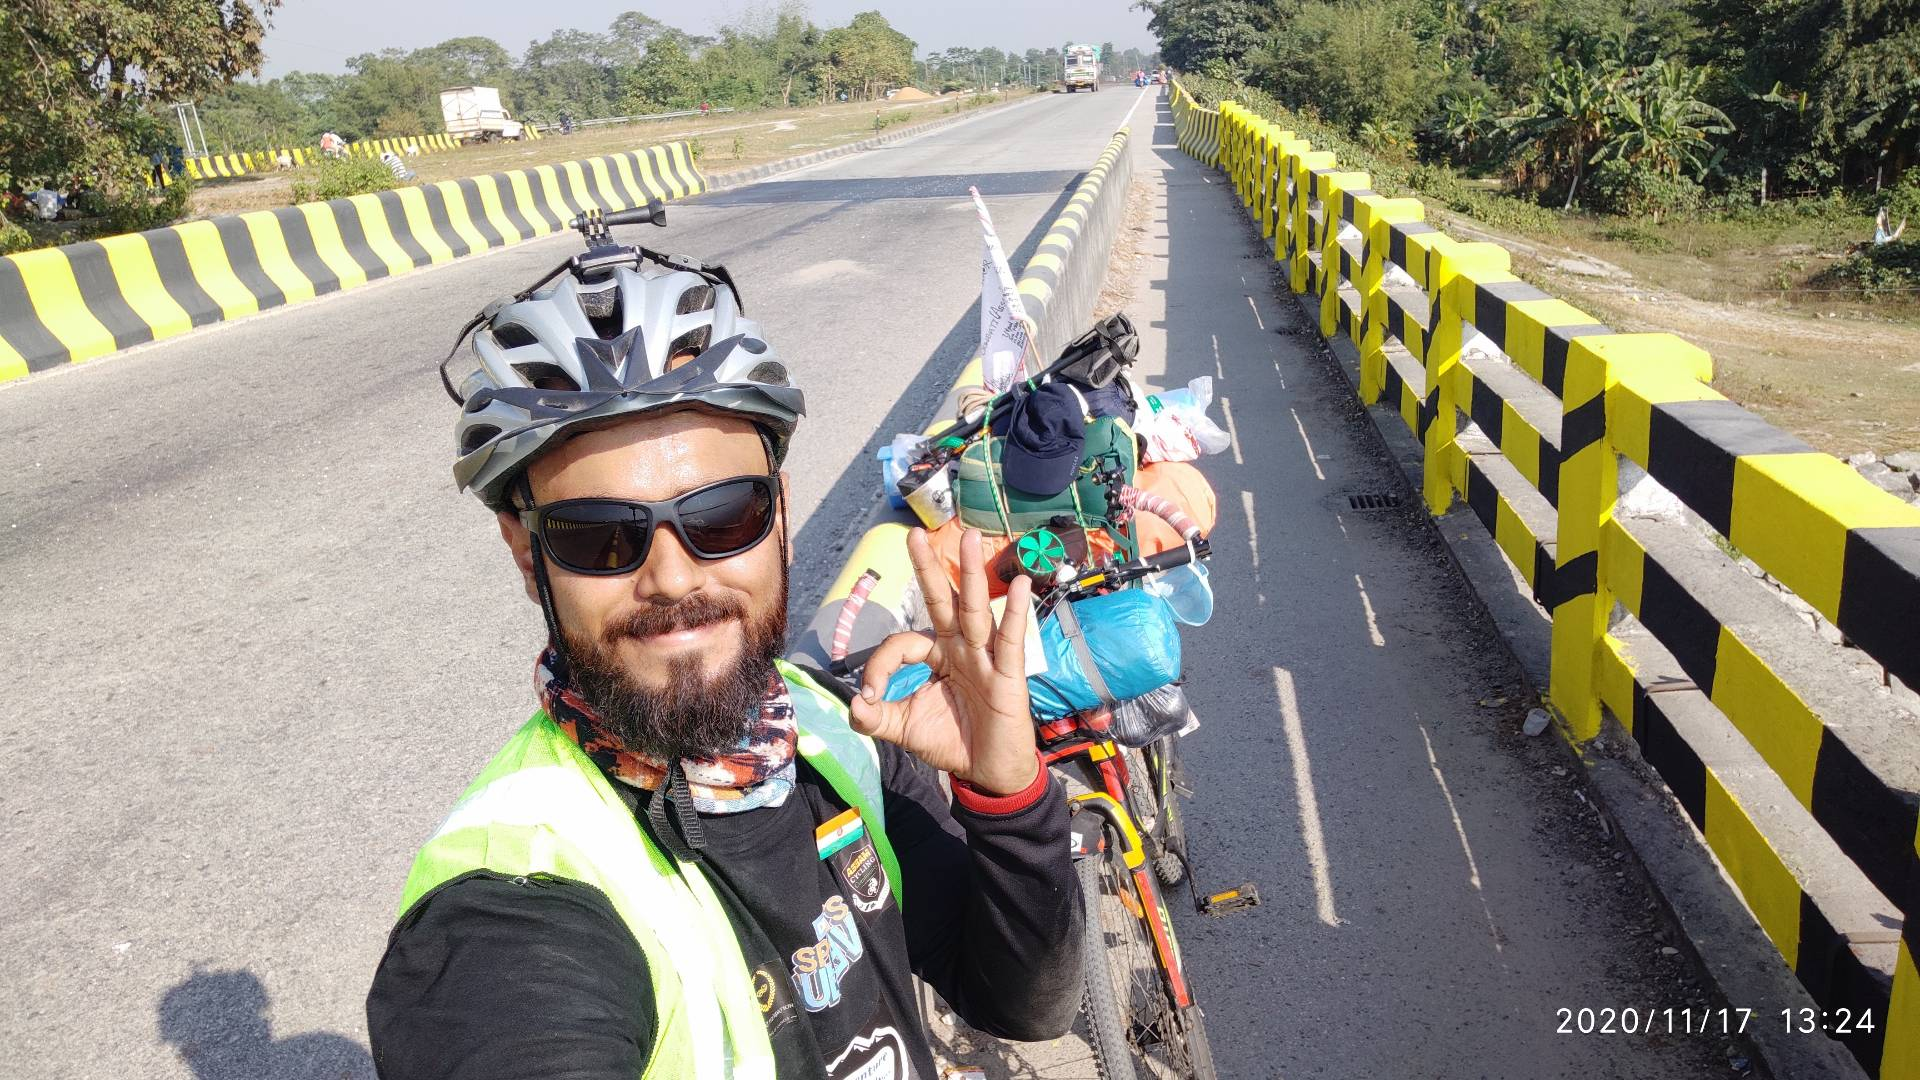 Chronicling India from East to West: An Adventure Junkie's Solo Bicycling Odyssey To Meet The Iron Man!